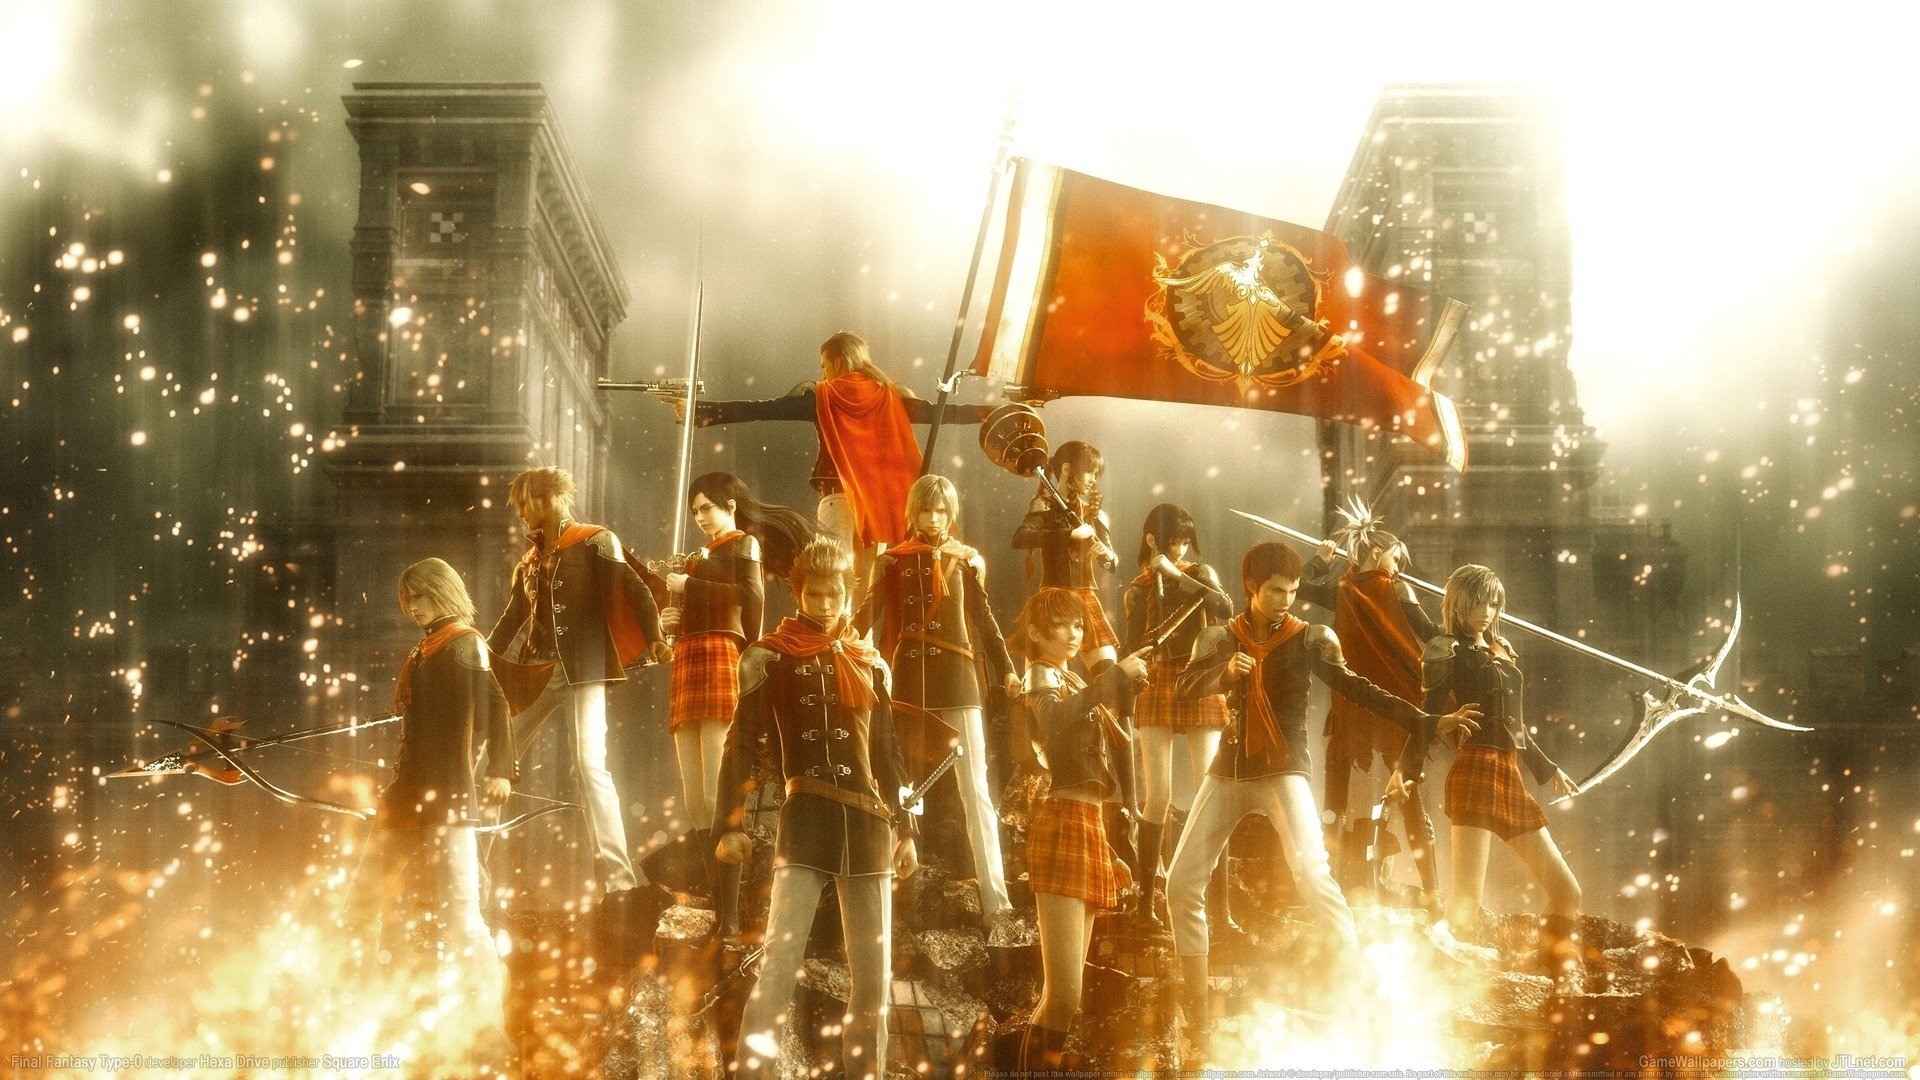 13 Final Fantasy Type 0 Hd Hd Wallpapers Background Images